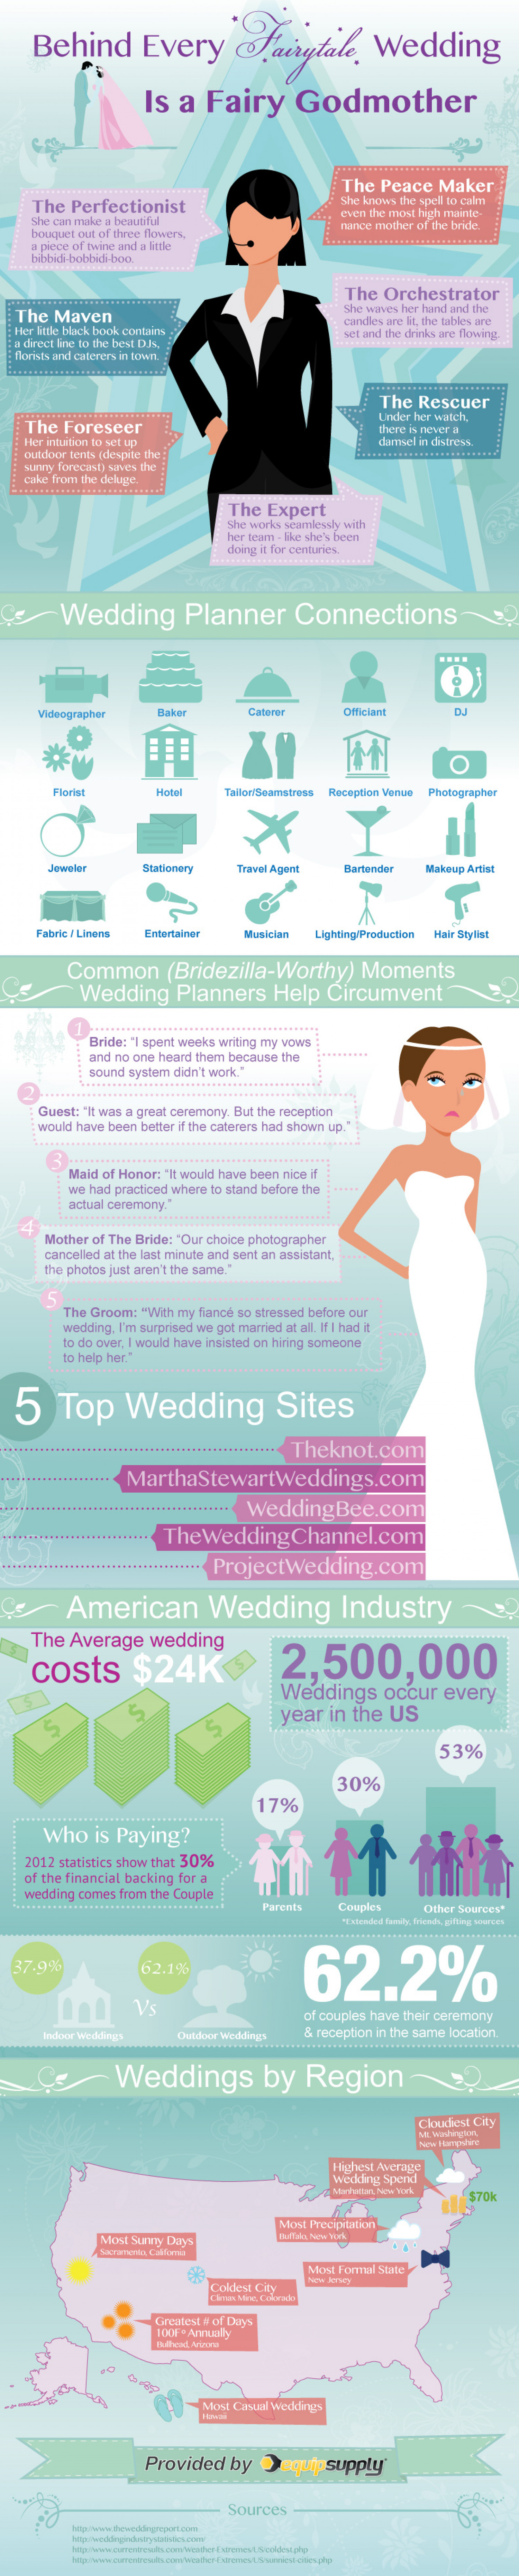 Behind Every Fairytale Wedding Is A Fairy Godmother Infographic